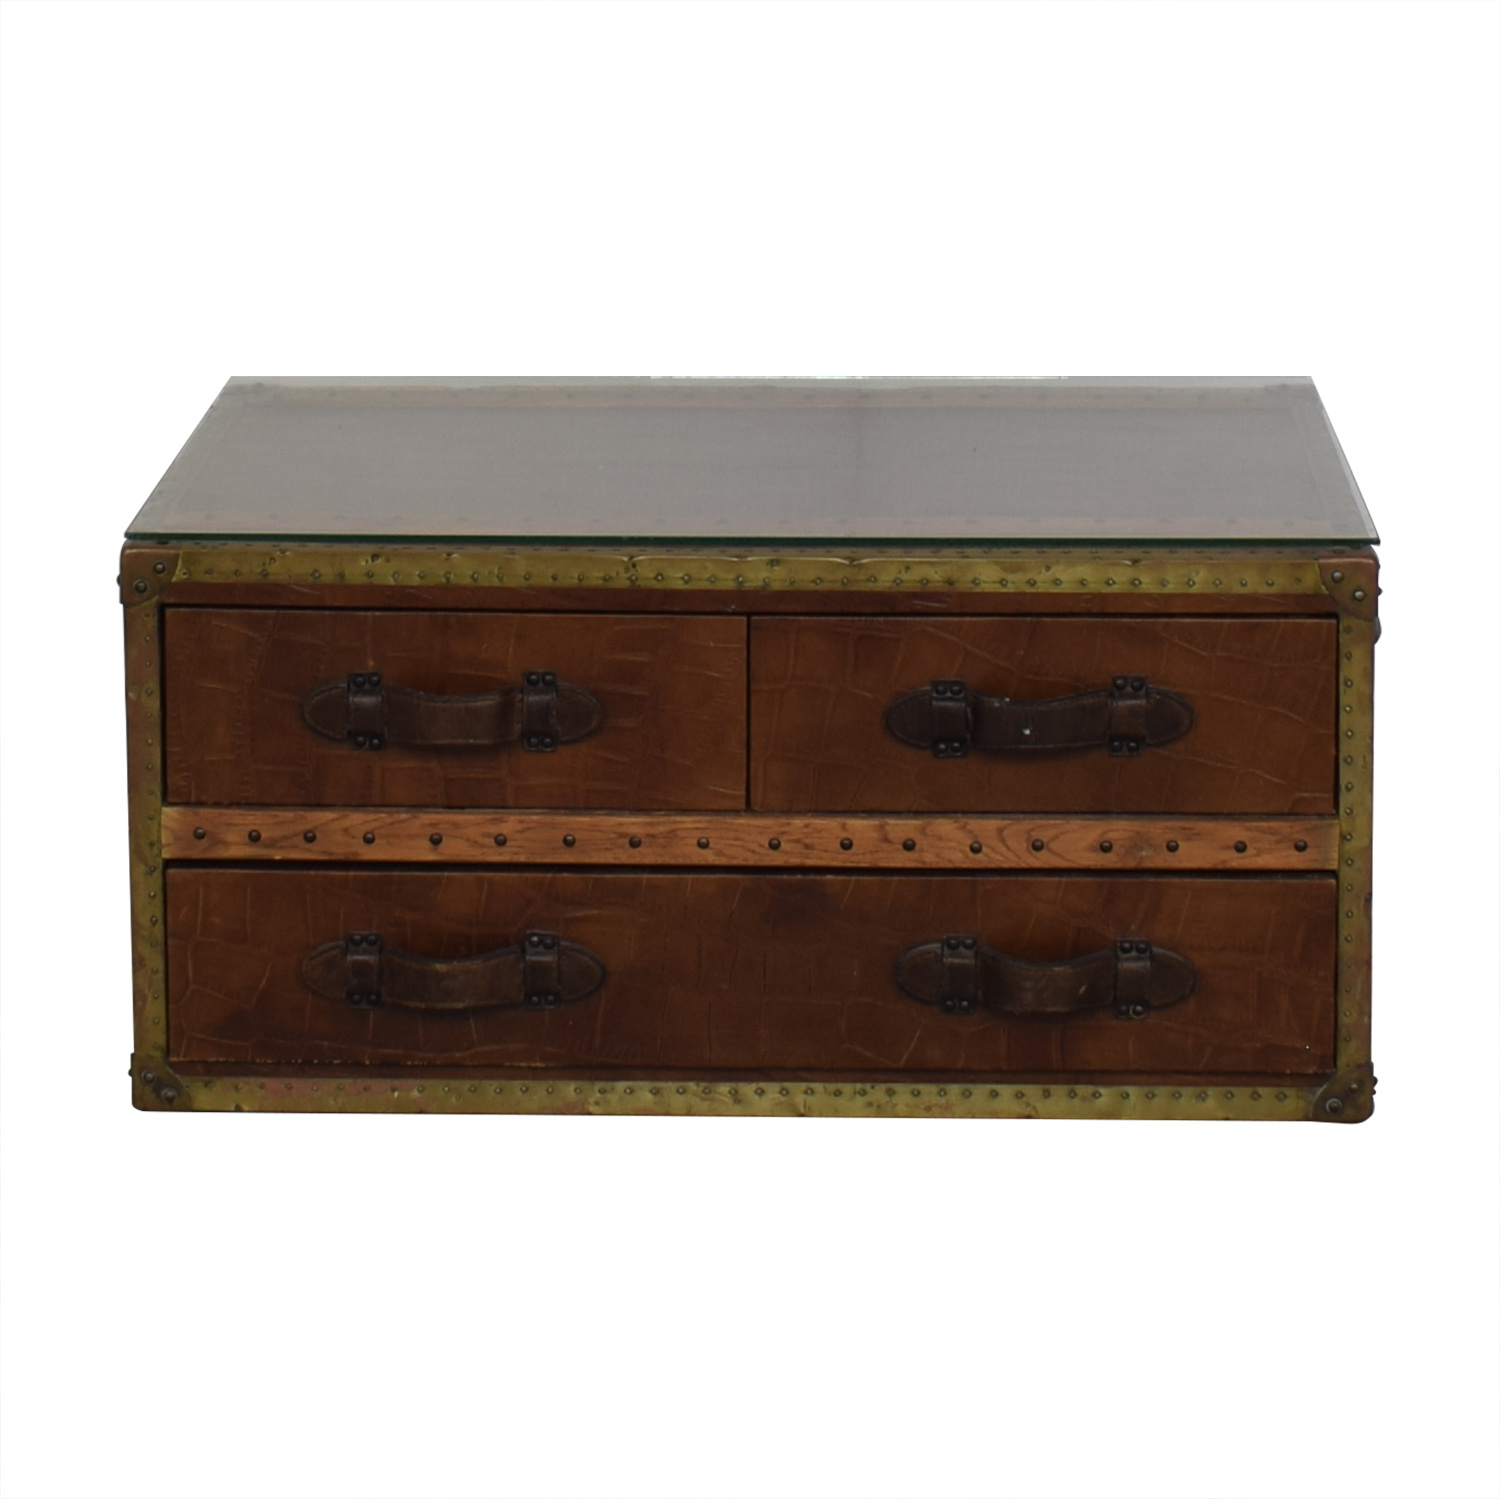 ABC Carpet & Home Steamer Trunk Coffee Table / Tables